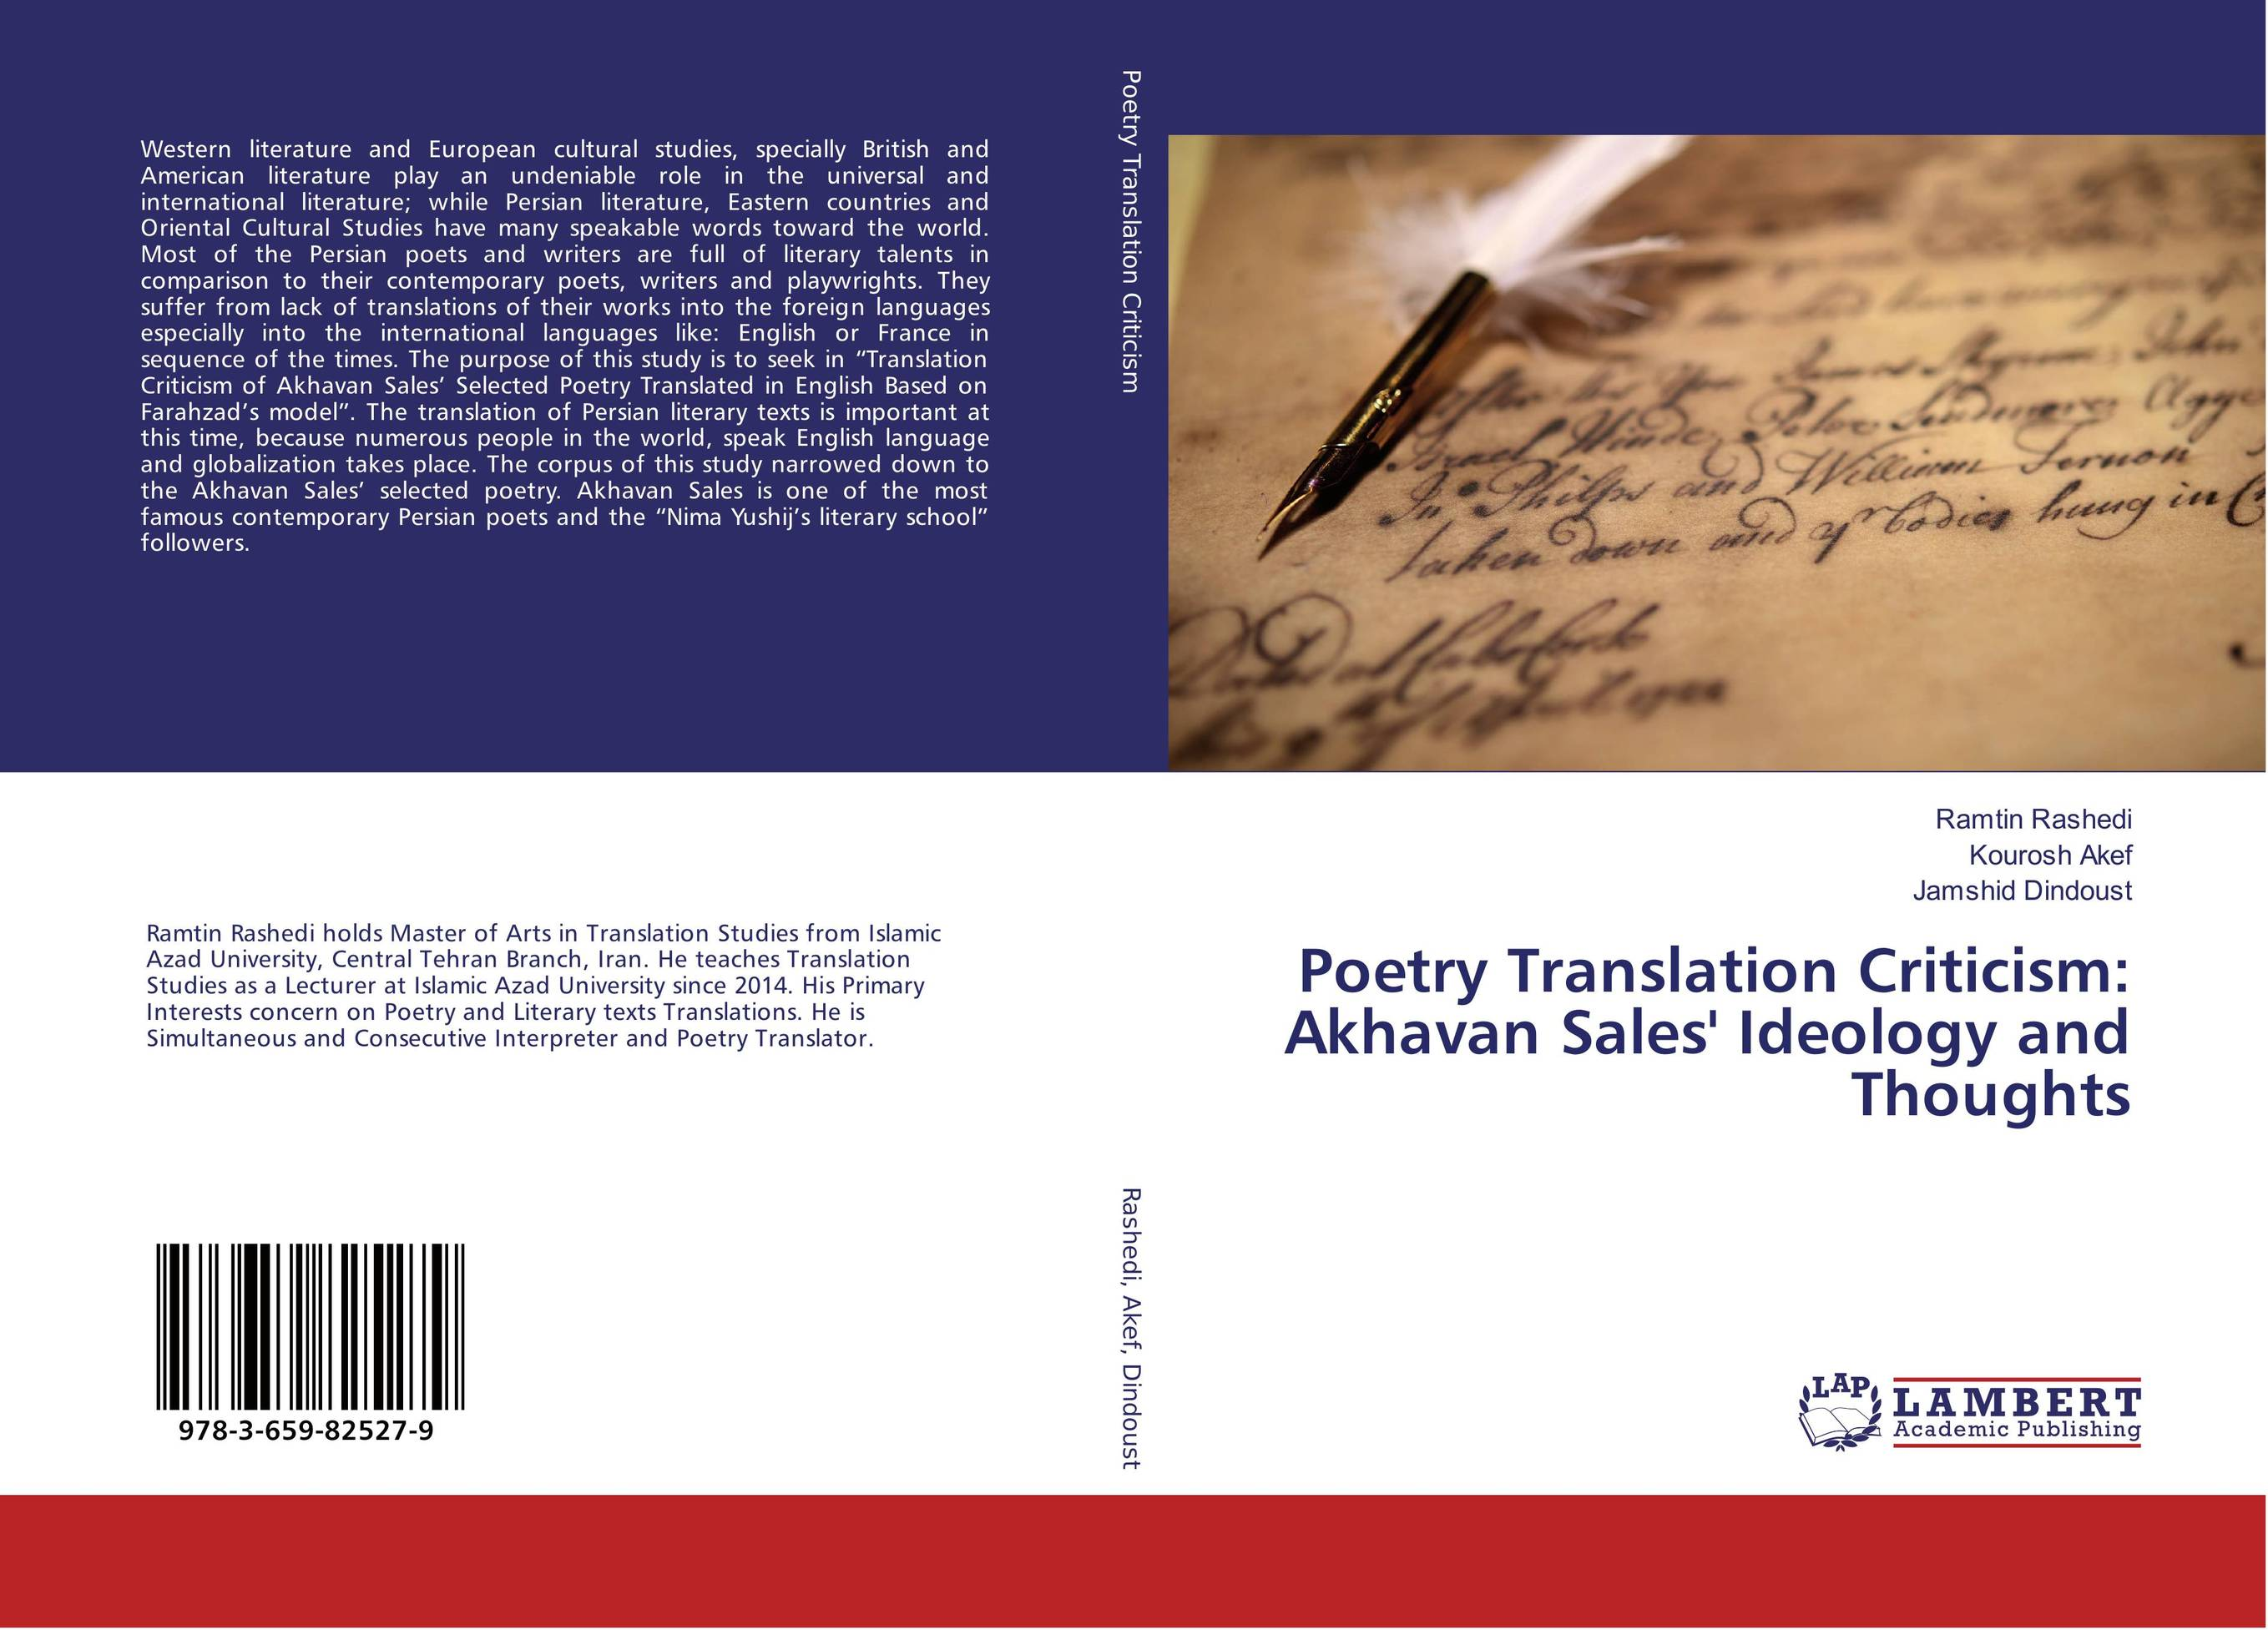 Poetry Translation Criticism: Akhavan Sales' Ideology and Thoughts the handbook of translation and cognition